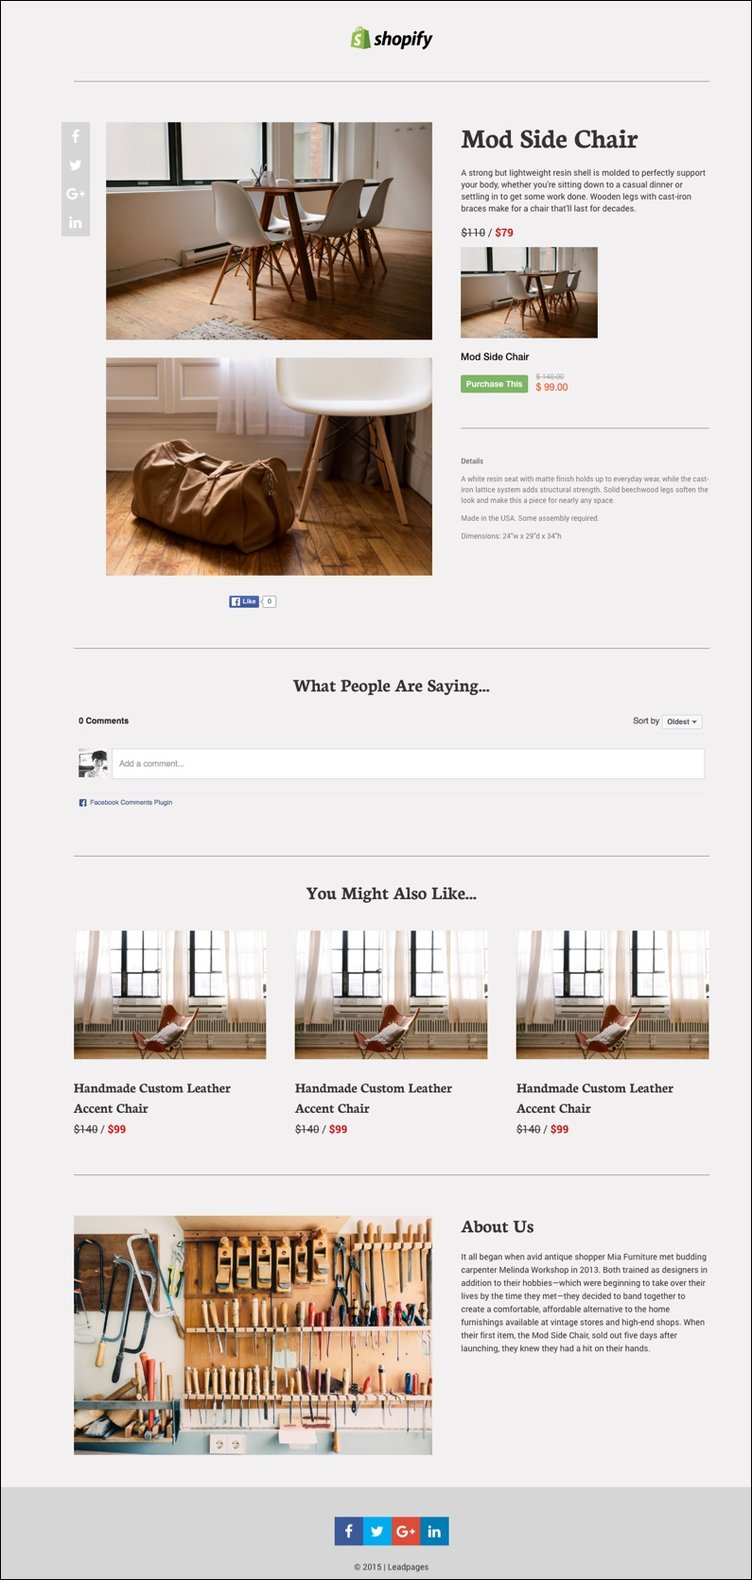 Leadpages' Shopify One-Item Landing Page